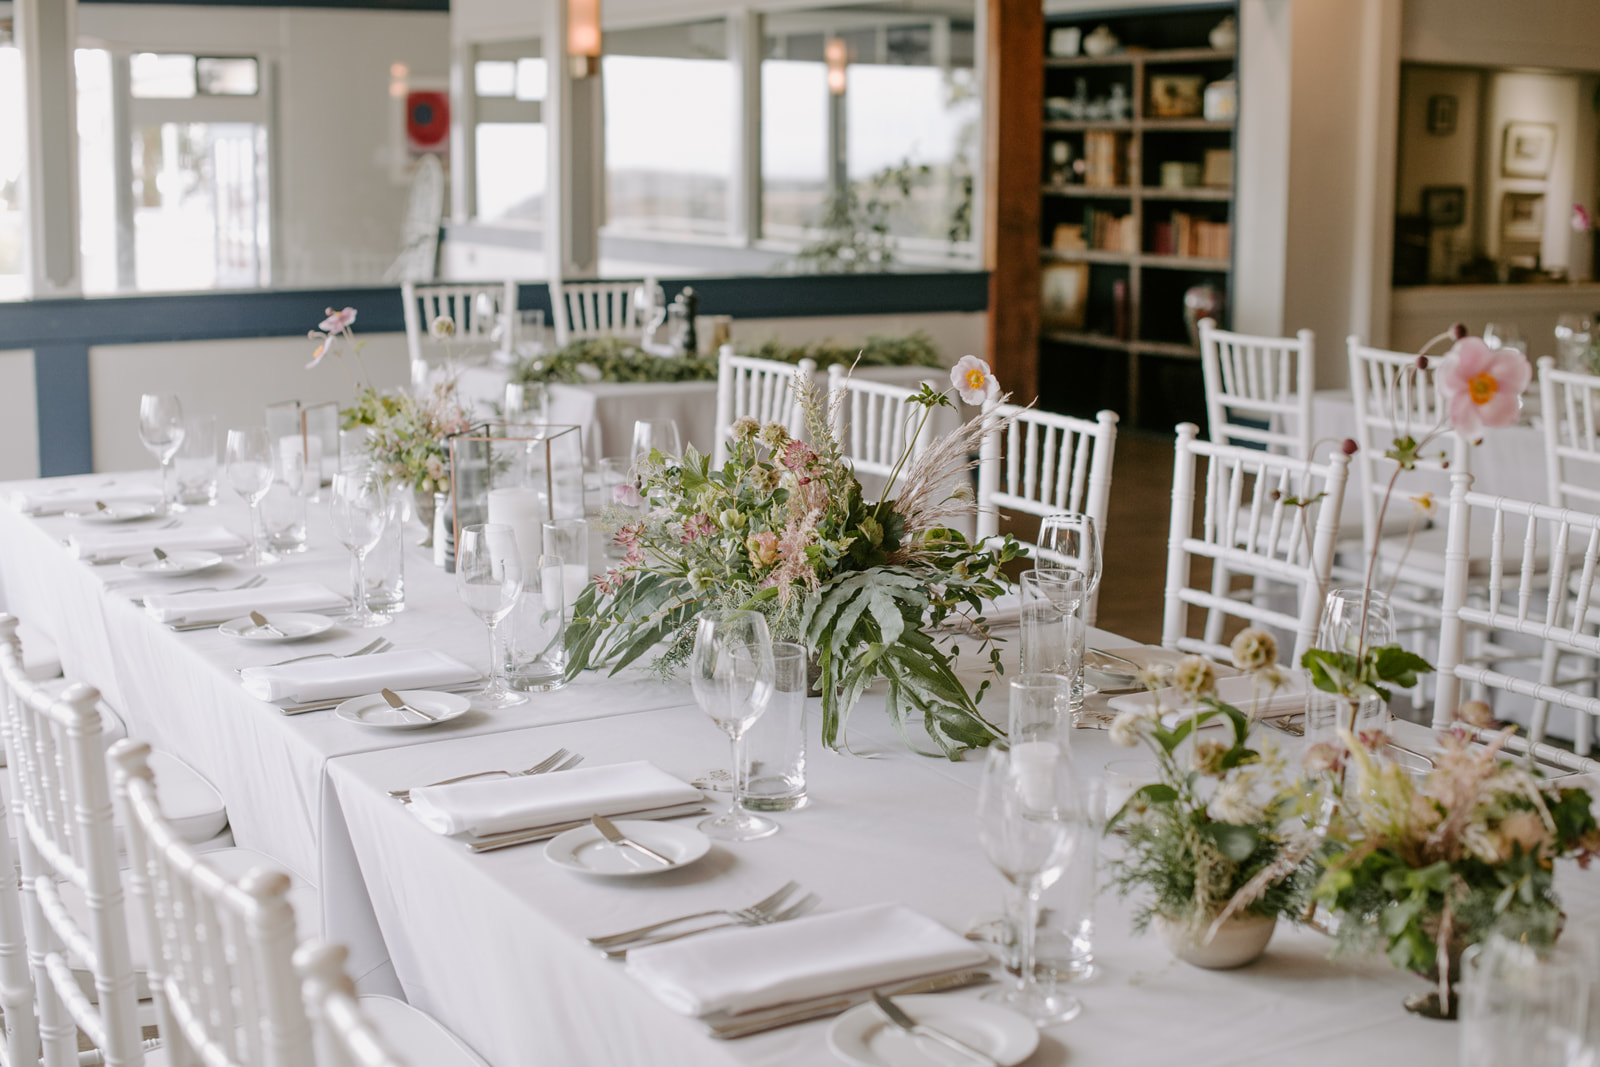 Fern, Anemone, Pampas Grass, Hellebore centerpieces for an earthy and wild wedding celebration at Heritage House Resort by Venn Floral photography by Kristen Marie Parker.